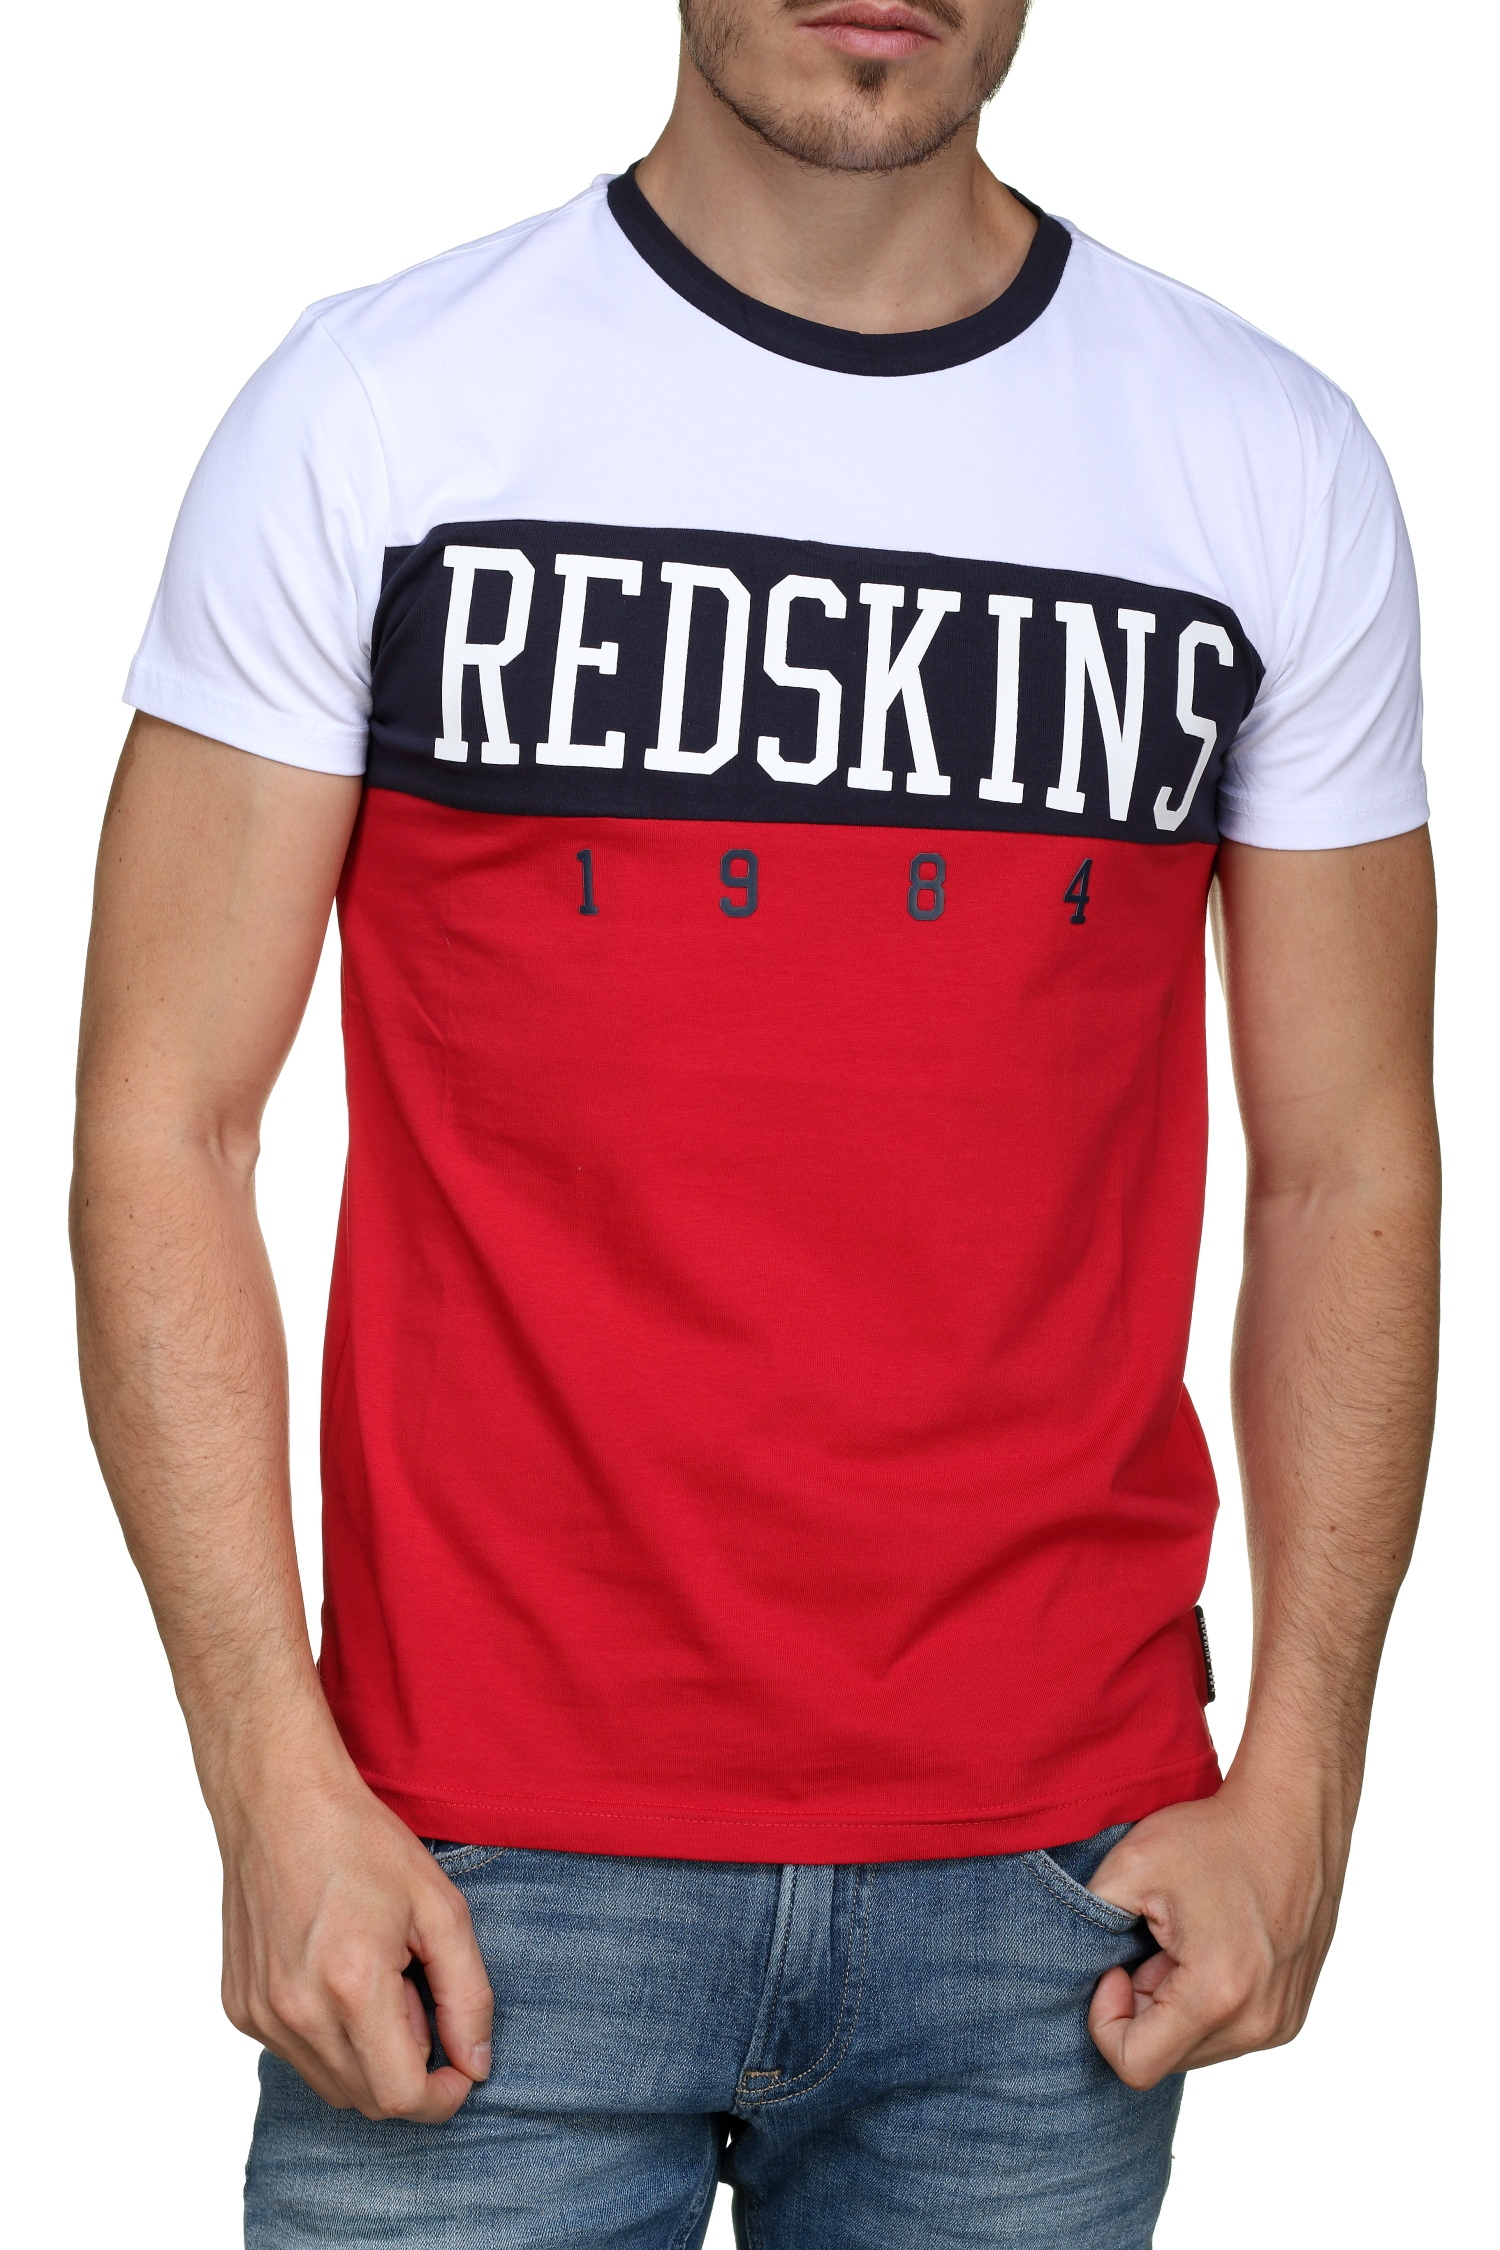 https://www.leadermode.com/179340/redskins-doves-calder-red-navy-white.jpg